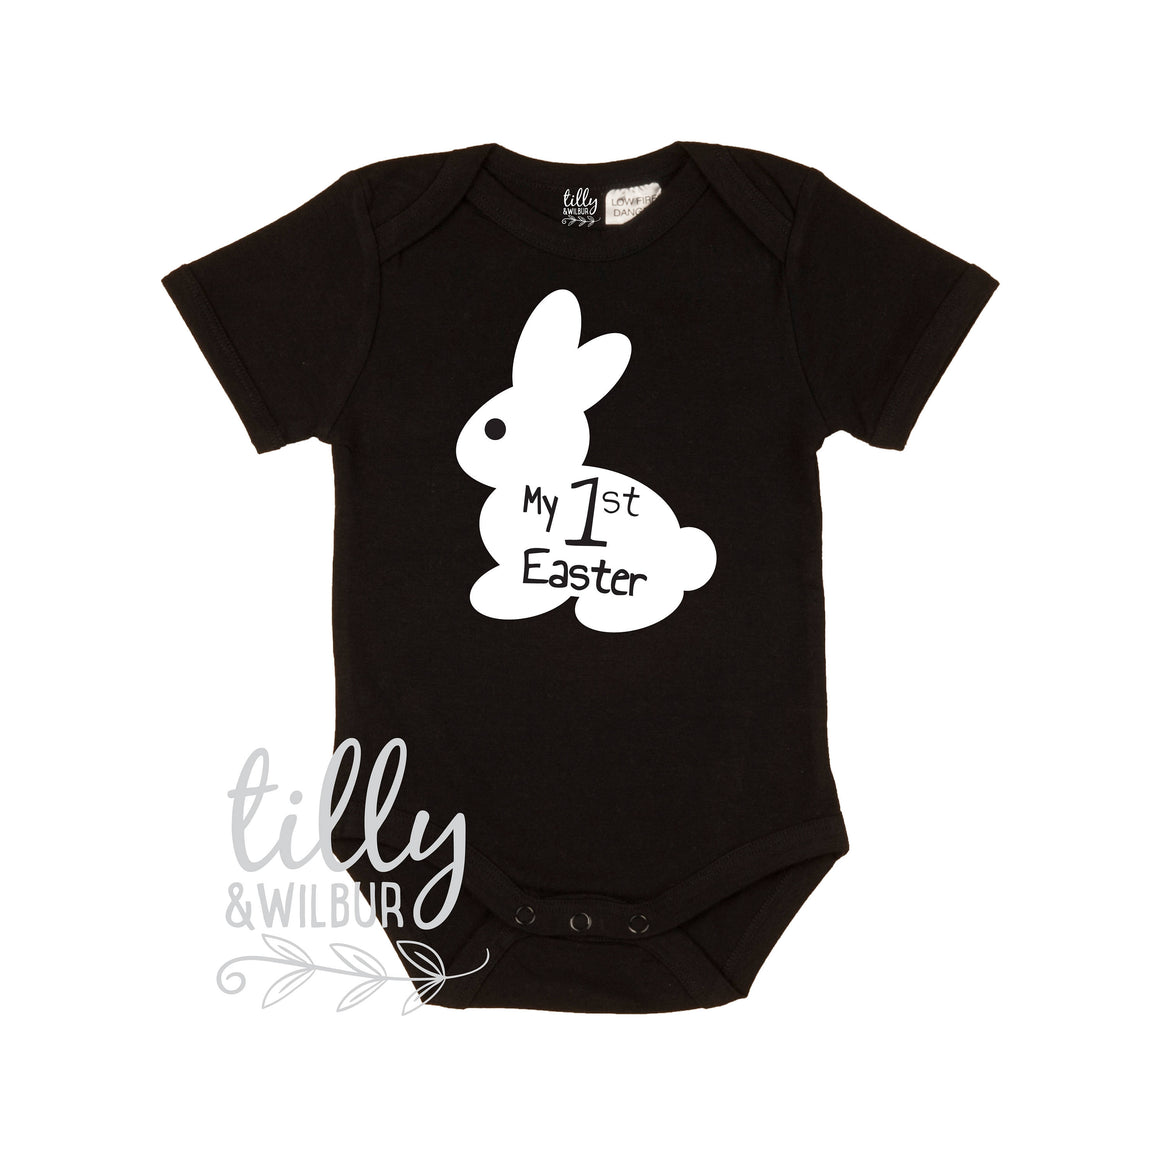 My 1st Easter Baby Bodysuit, First Easter One-Piece, Newborn Easter Gift, 1st Easter Outfit, Baby's 1st Easter, Bunny Rabbit, U-W-BS